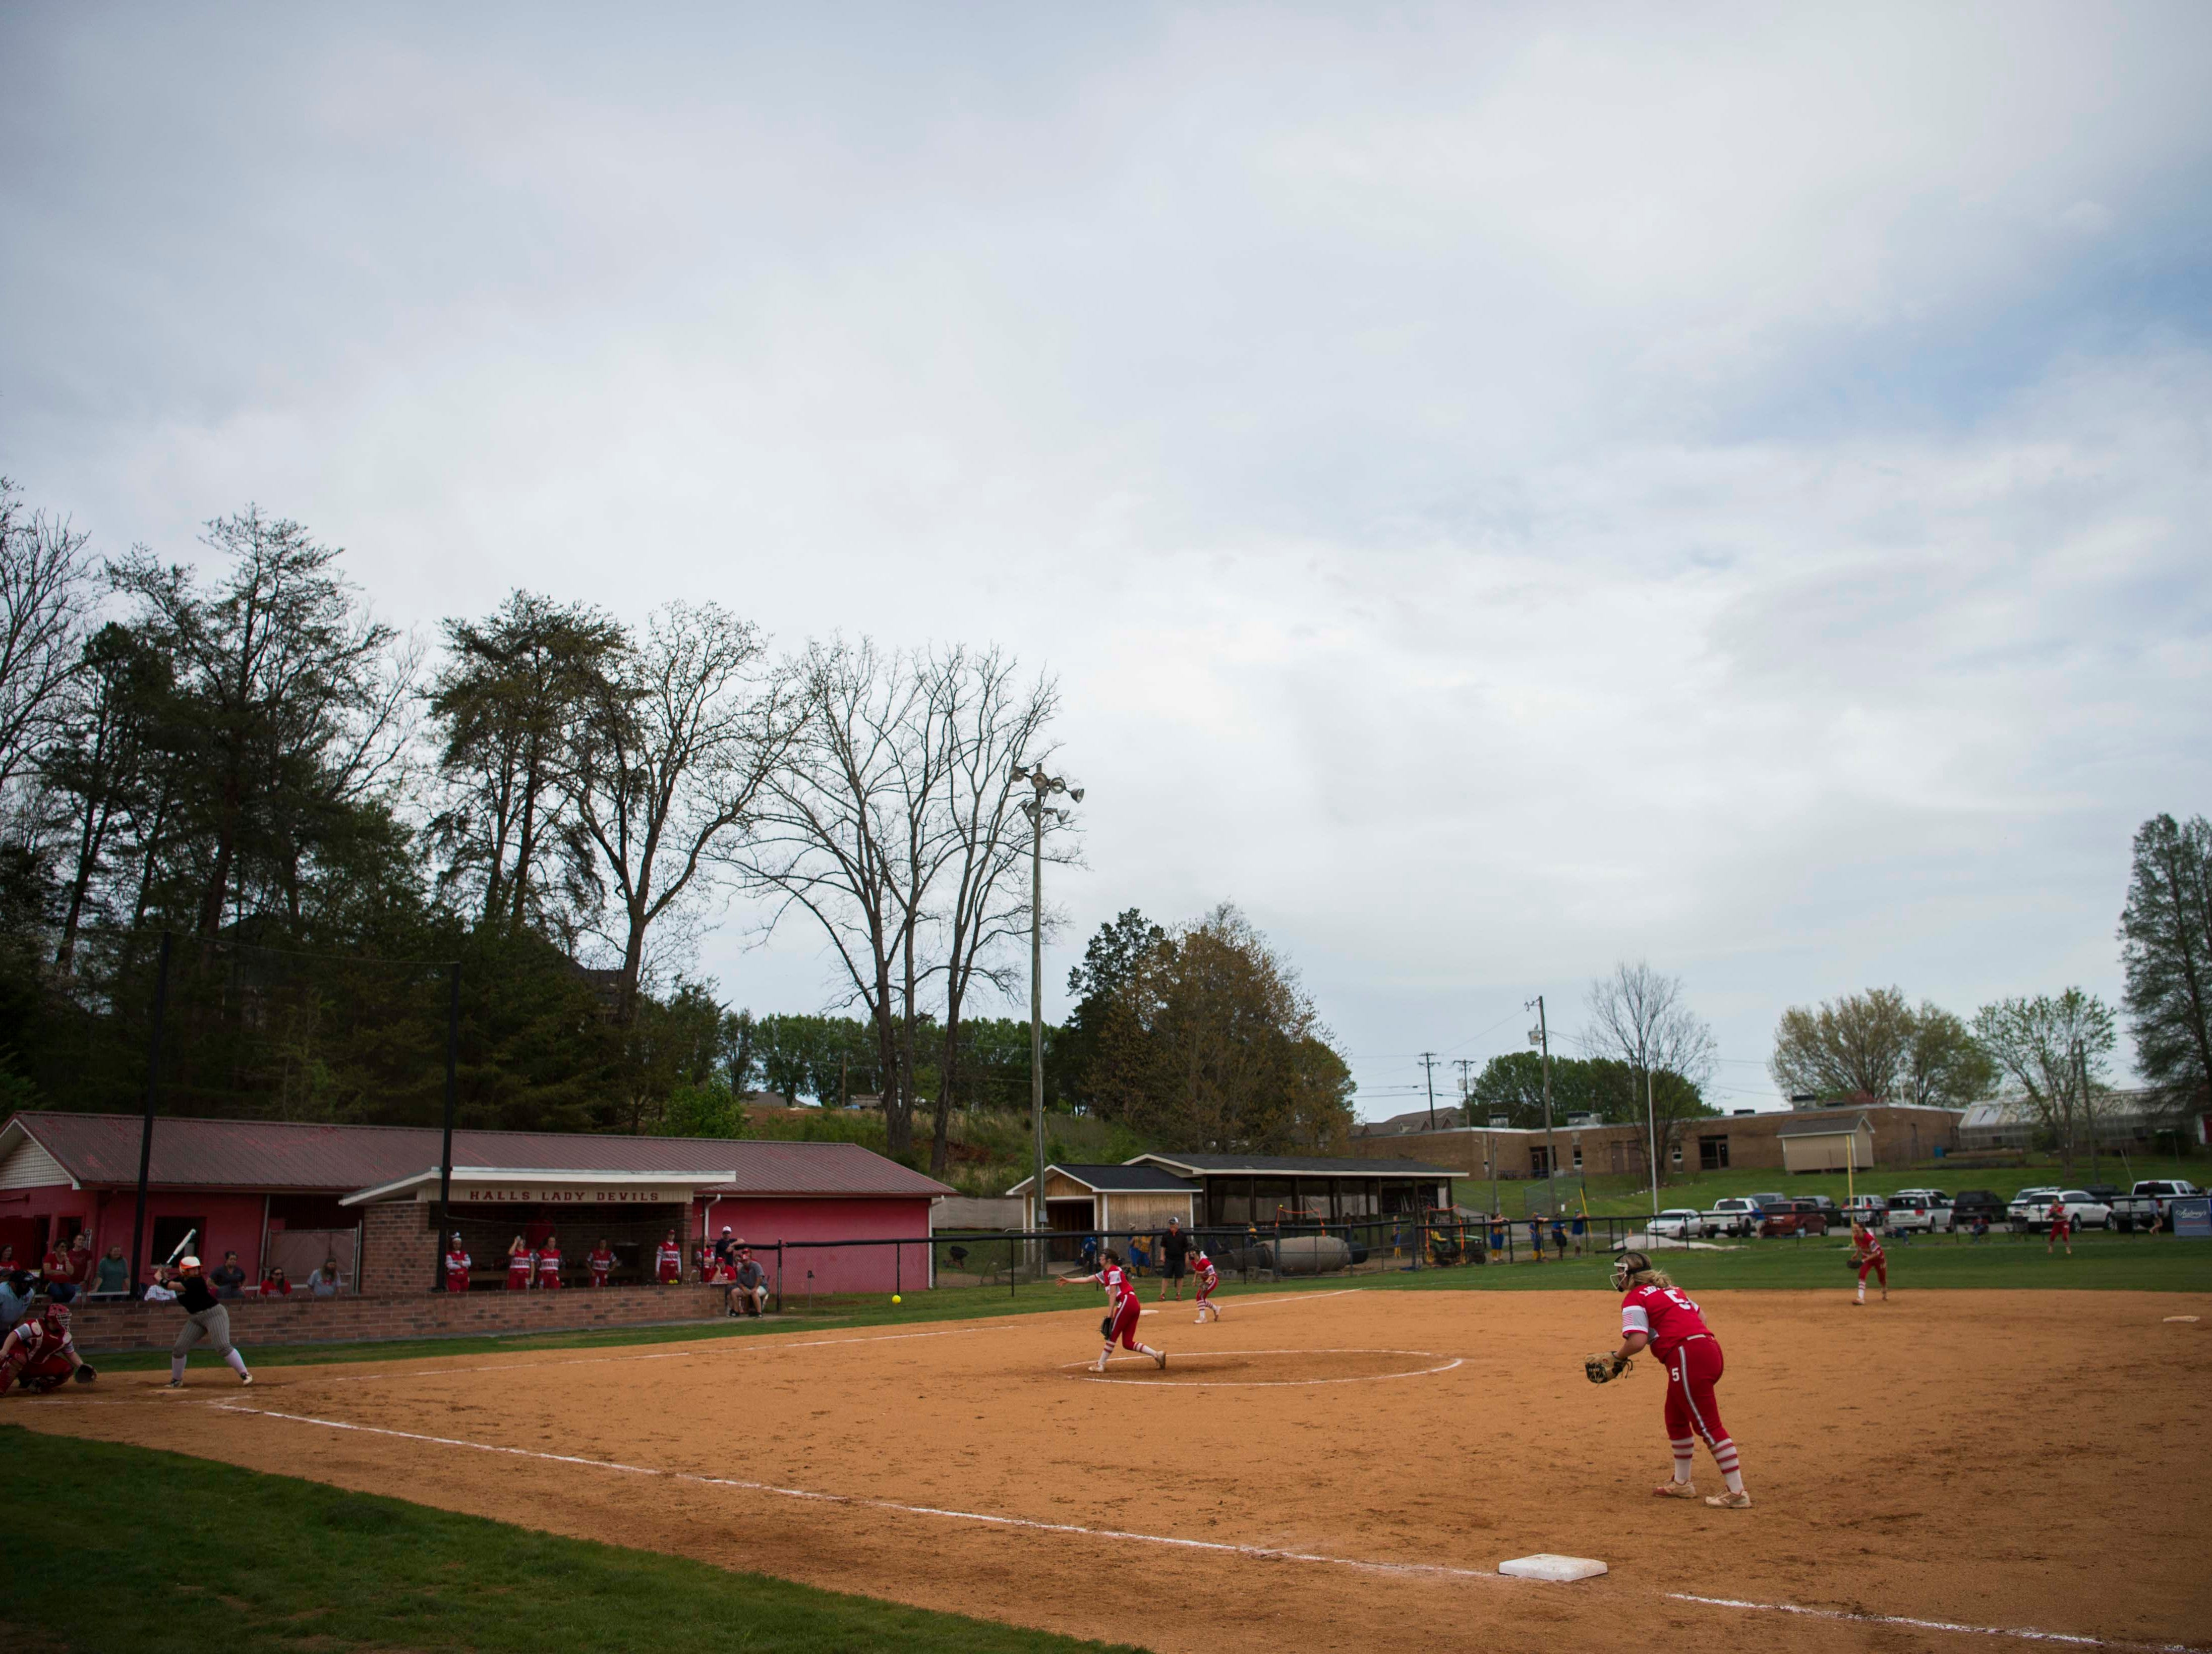 Play continues during a high school softball game between Halls and Elizabethton at Halls Friday, April 12, 2019. Halls defeated Elizabethton.